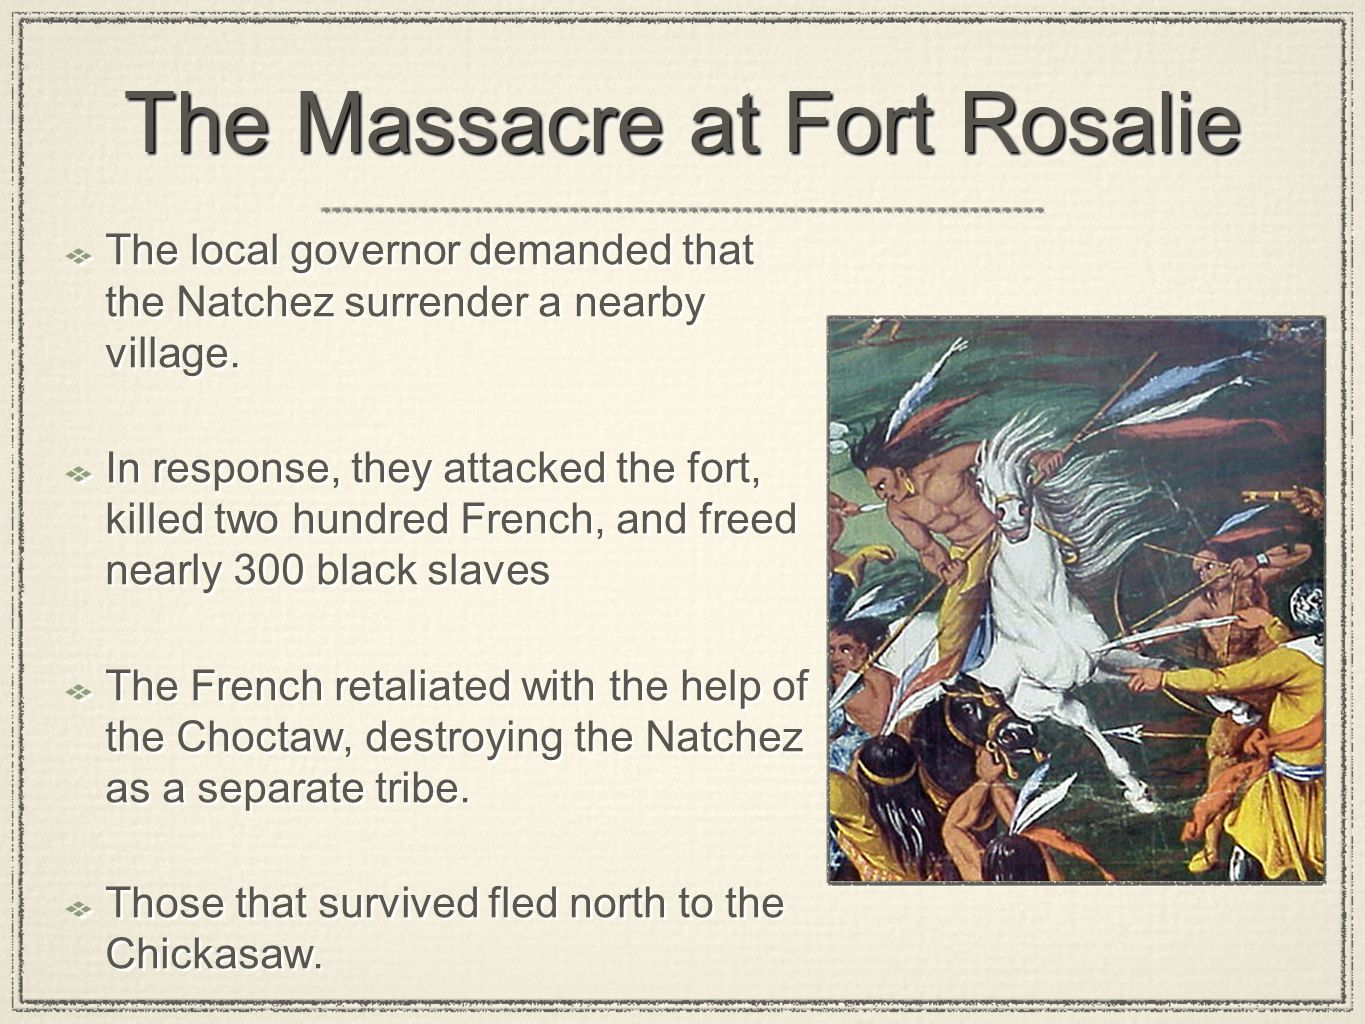 The Massacre at Fort Rosalie The local governor demanded that the Natchez surrender a nearby village. In response, they attacked the fort, killed two